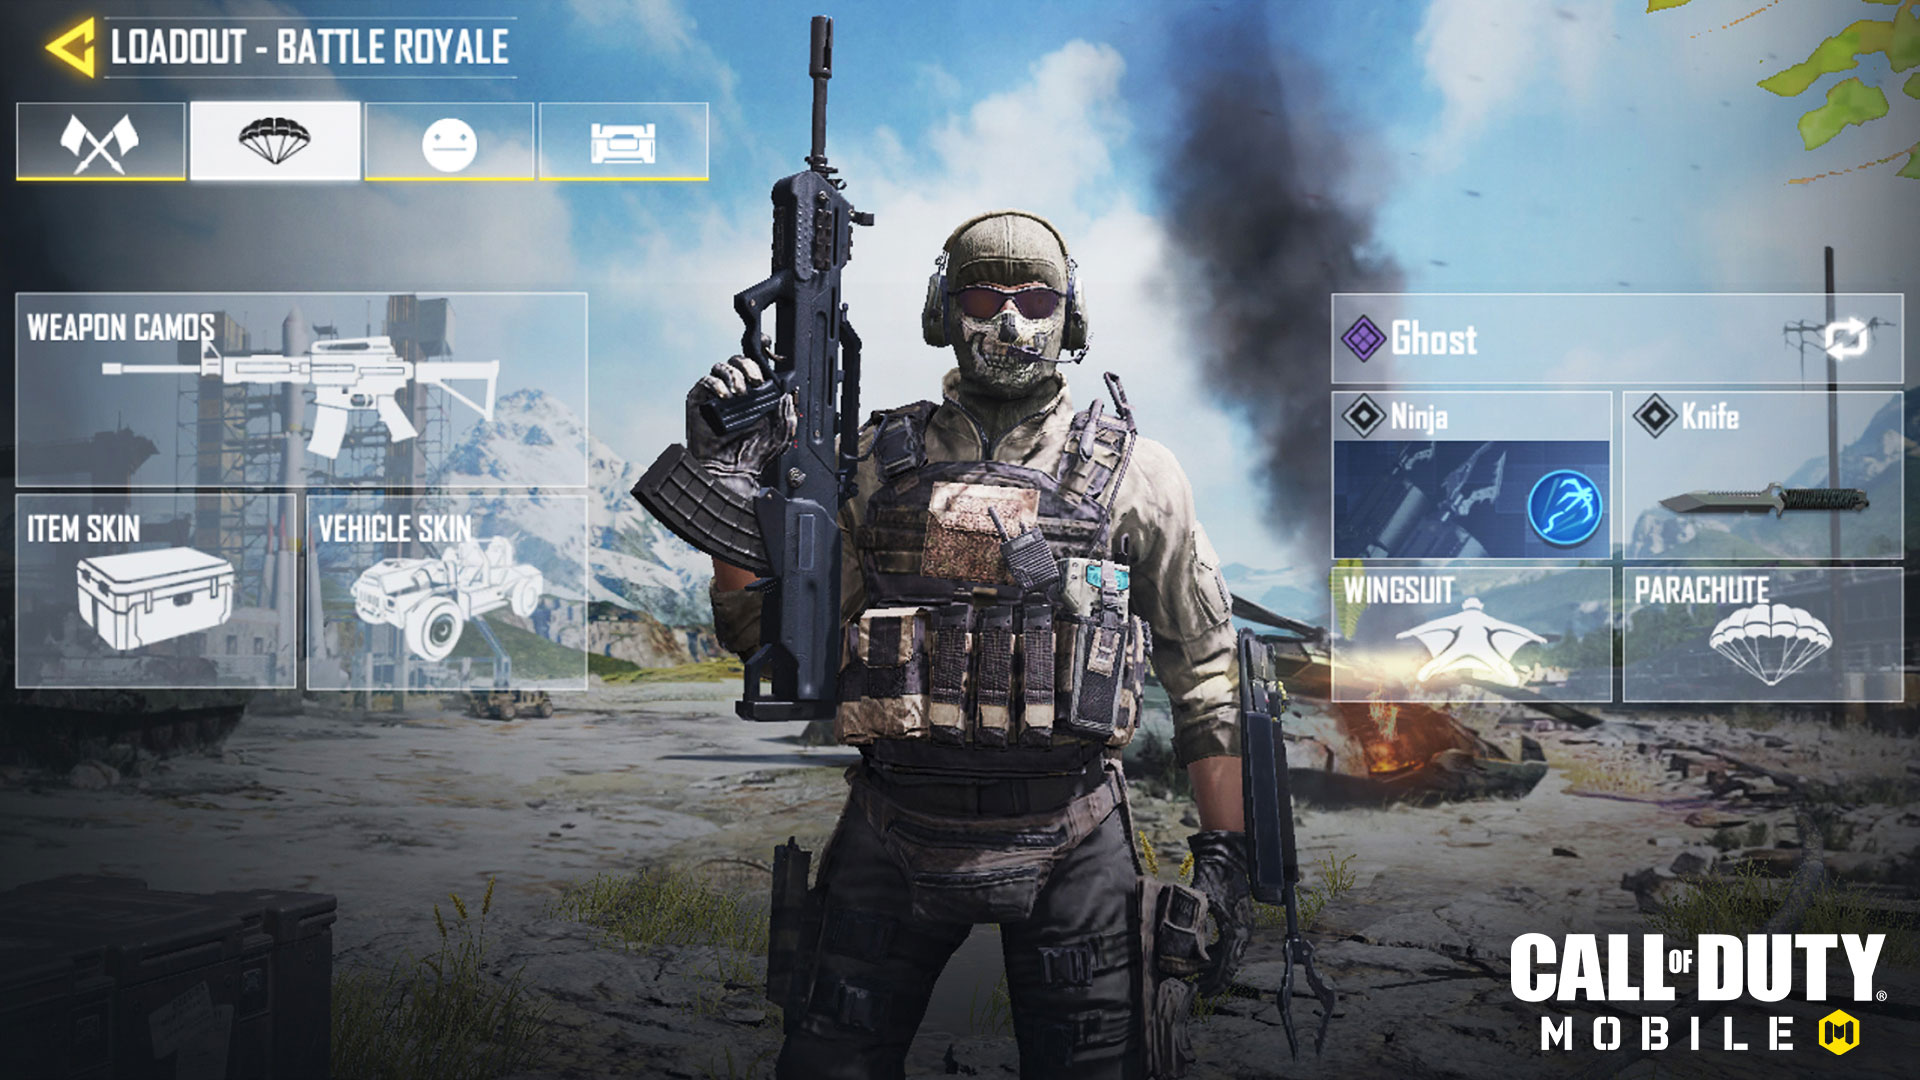 What are the permanent game modes in Call of Duty: Mobile